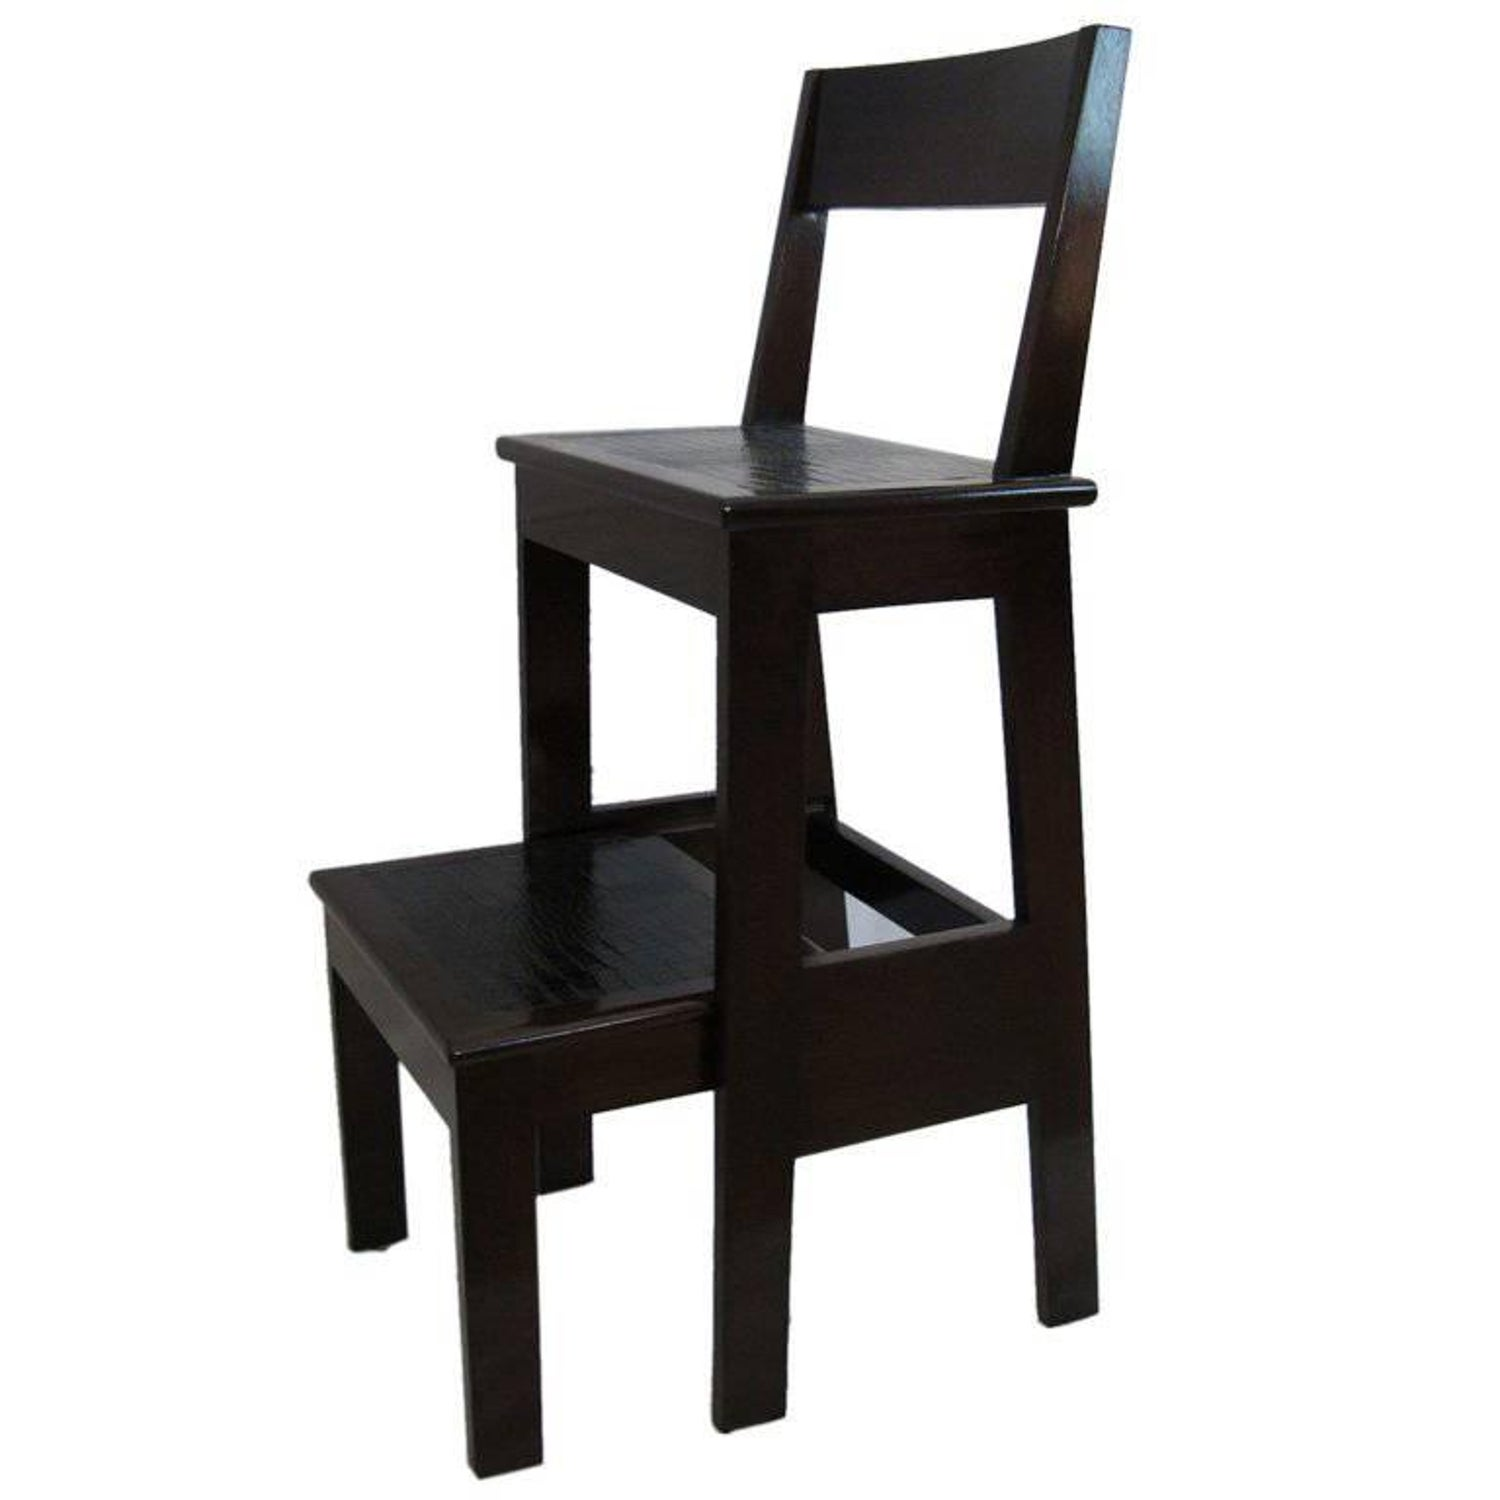 Prime Custom Mahogany And Leather Step Stool Ibusinesslaw Wood Chair Design Ideas Ibusinesslaworg